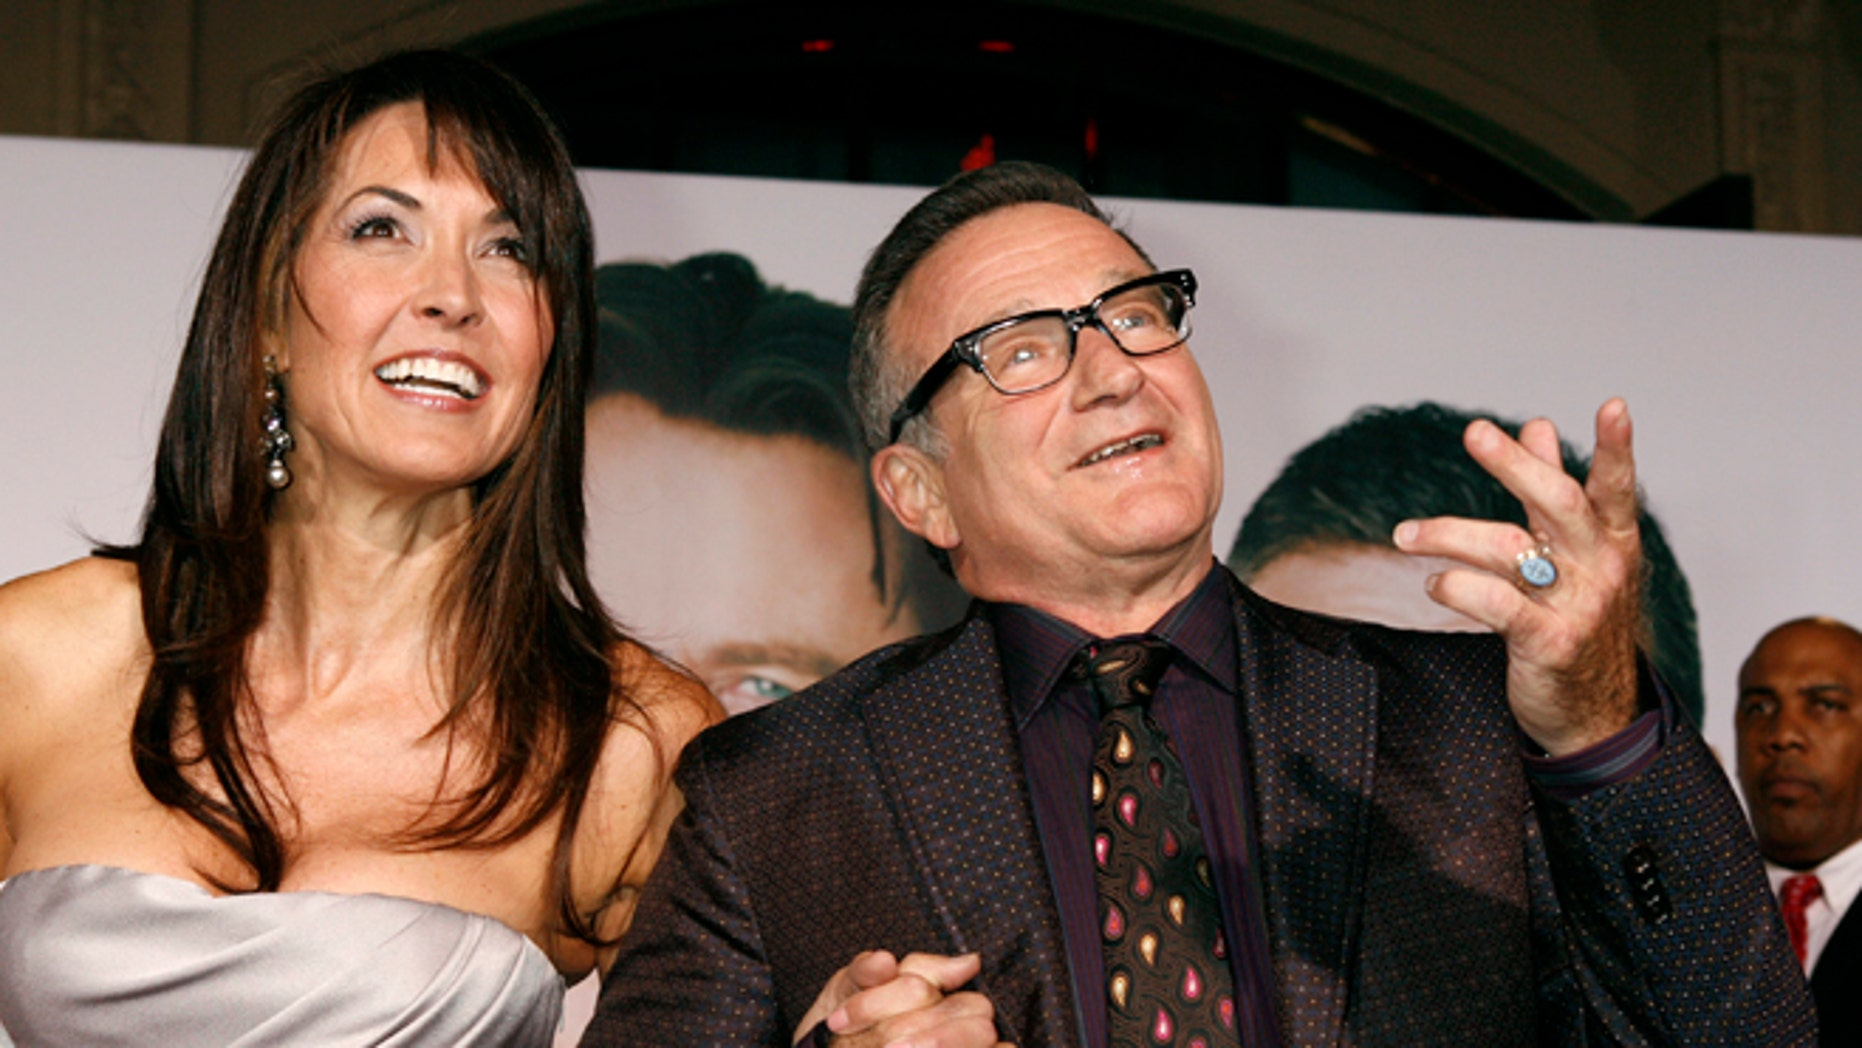 Robin Williams' widow has penned a heartbreaking essay about the actor's final months.